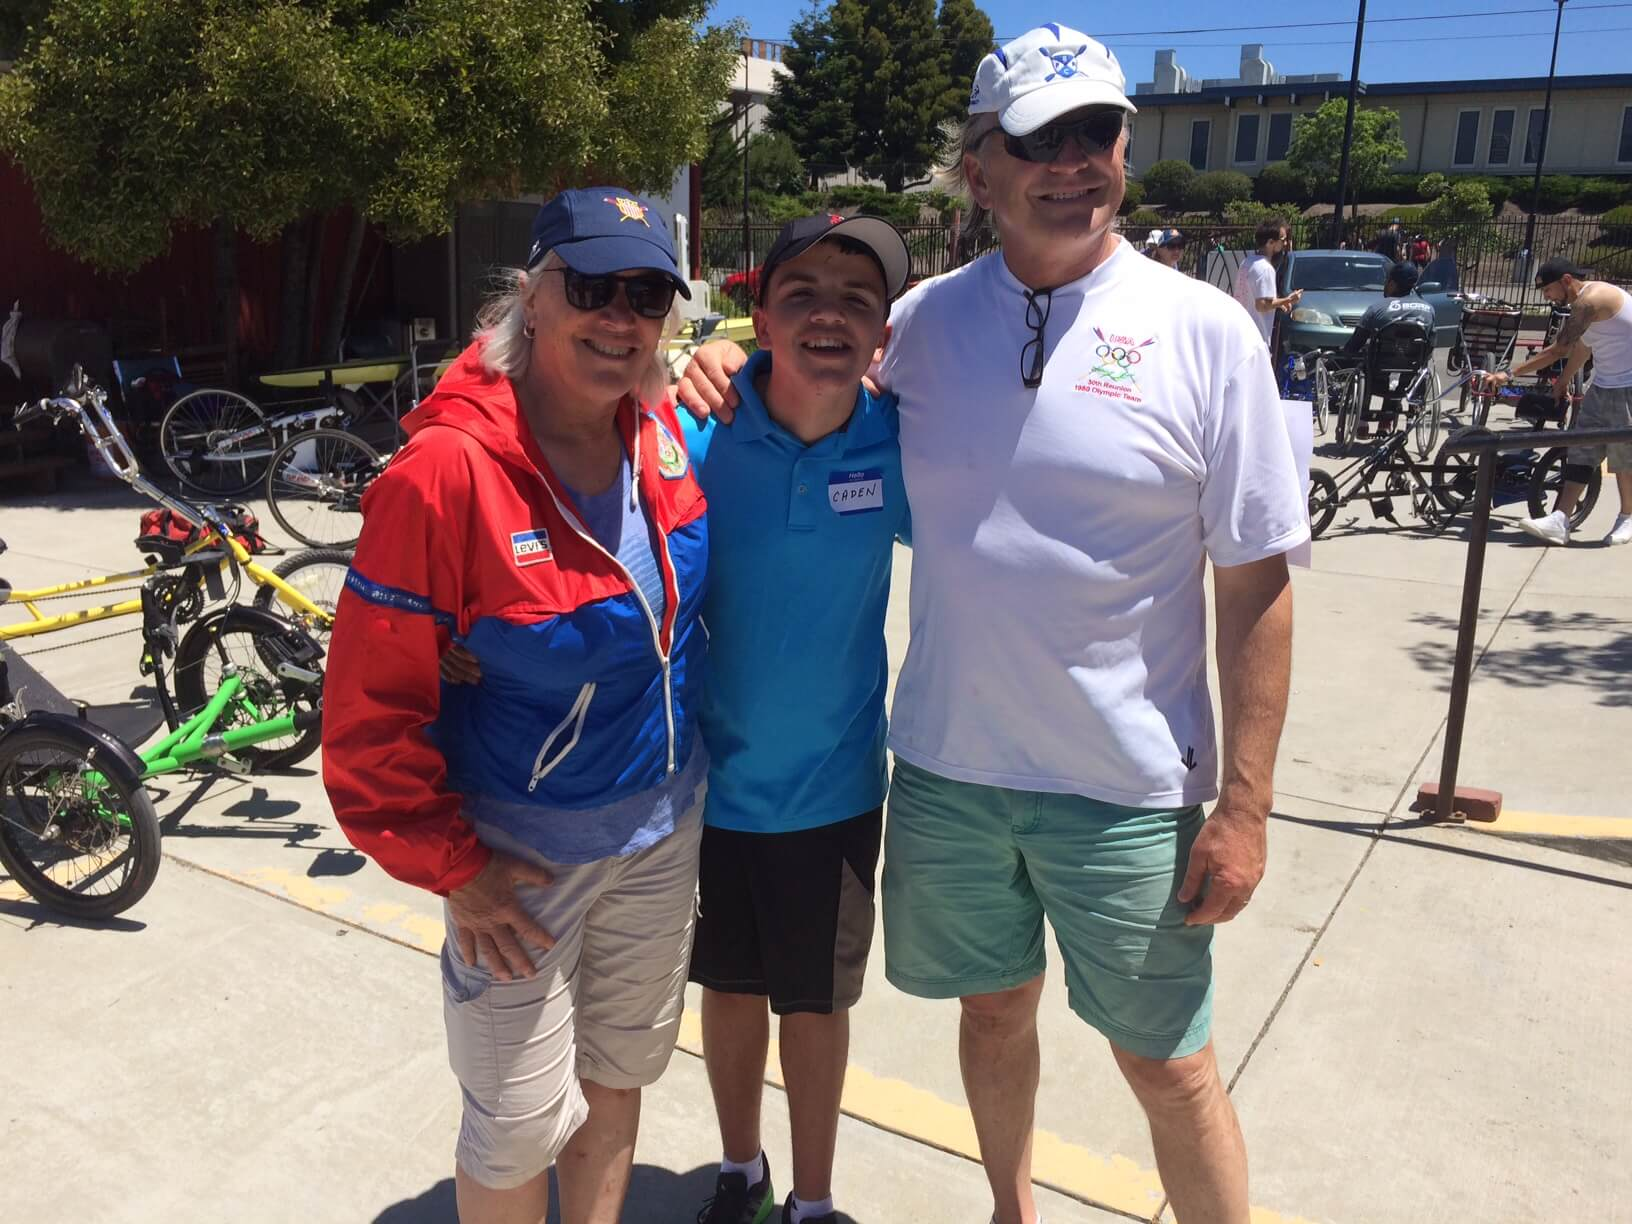 All smiles after learning to row, a young BORP participant poses with two former Olympic rowers, Charles Alterkruse (1980 & 1988 Olympics) and Liz Miles (1984 Olympics).